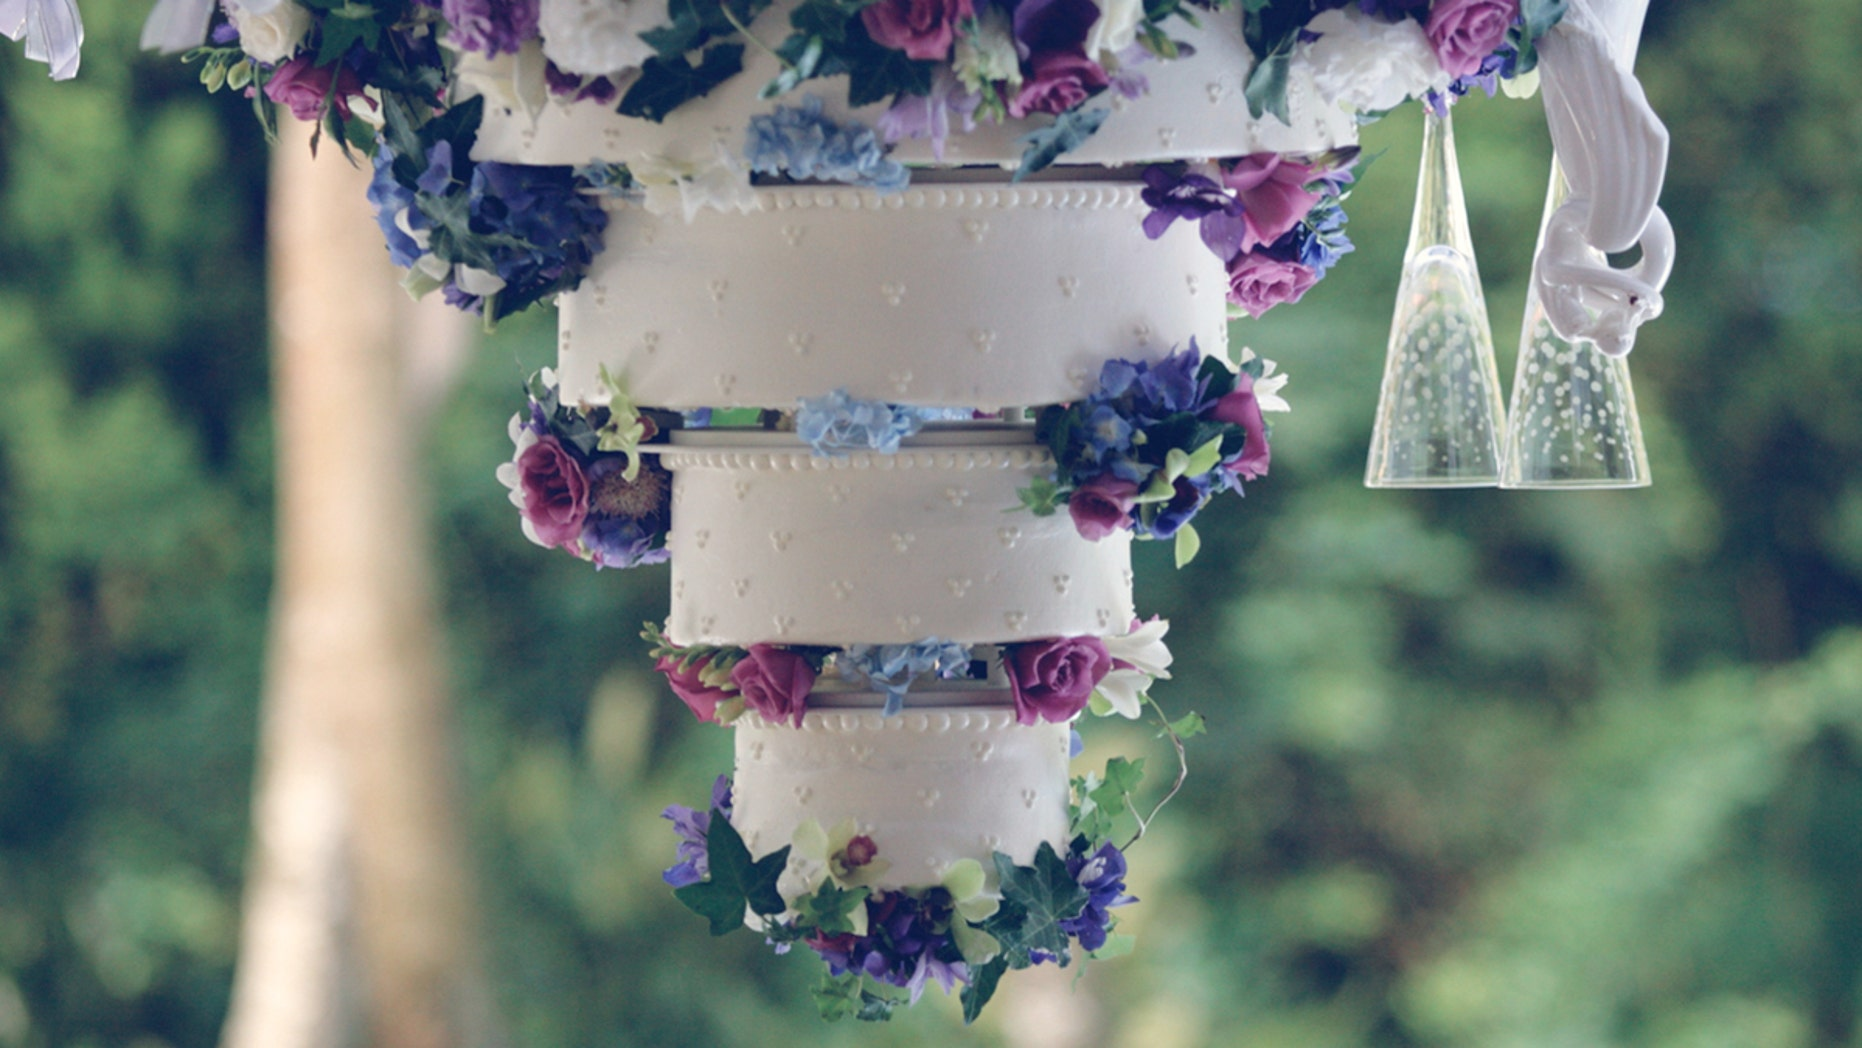 An elegant catered white wedding cake with 3 tiers and latticed frosting.